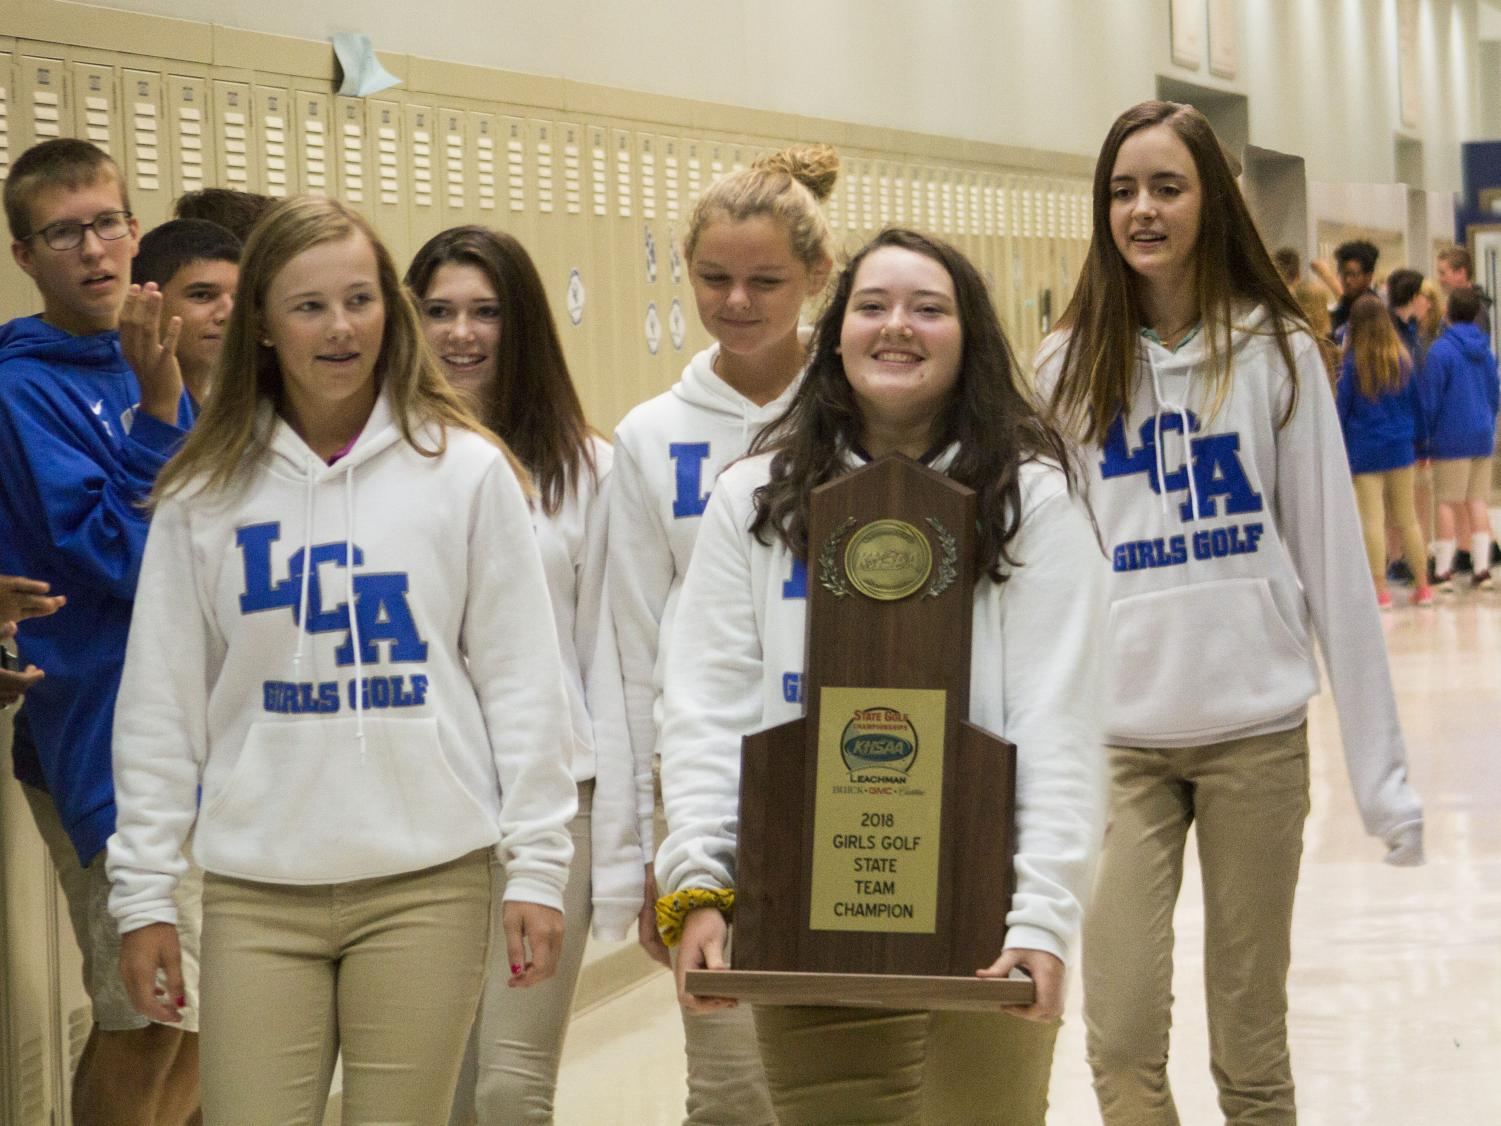 The Girls' Golf Team receives congratulations for their state championship during their Eagle Walk through the halls of the school.